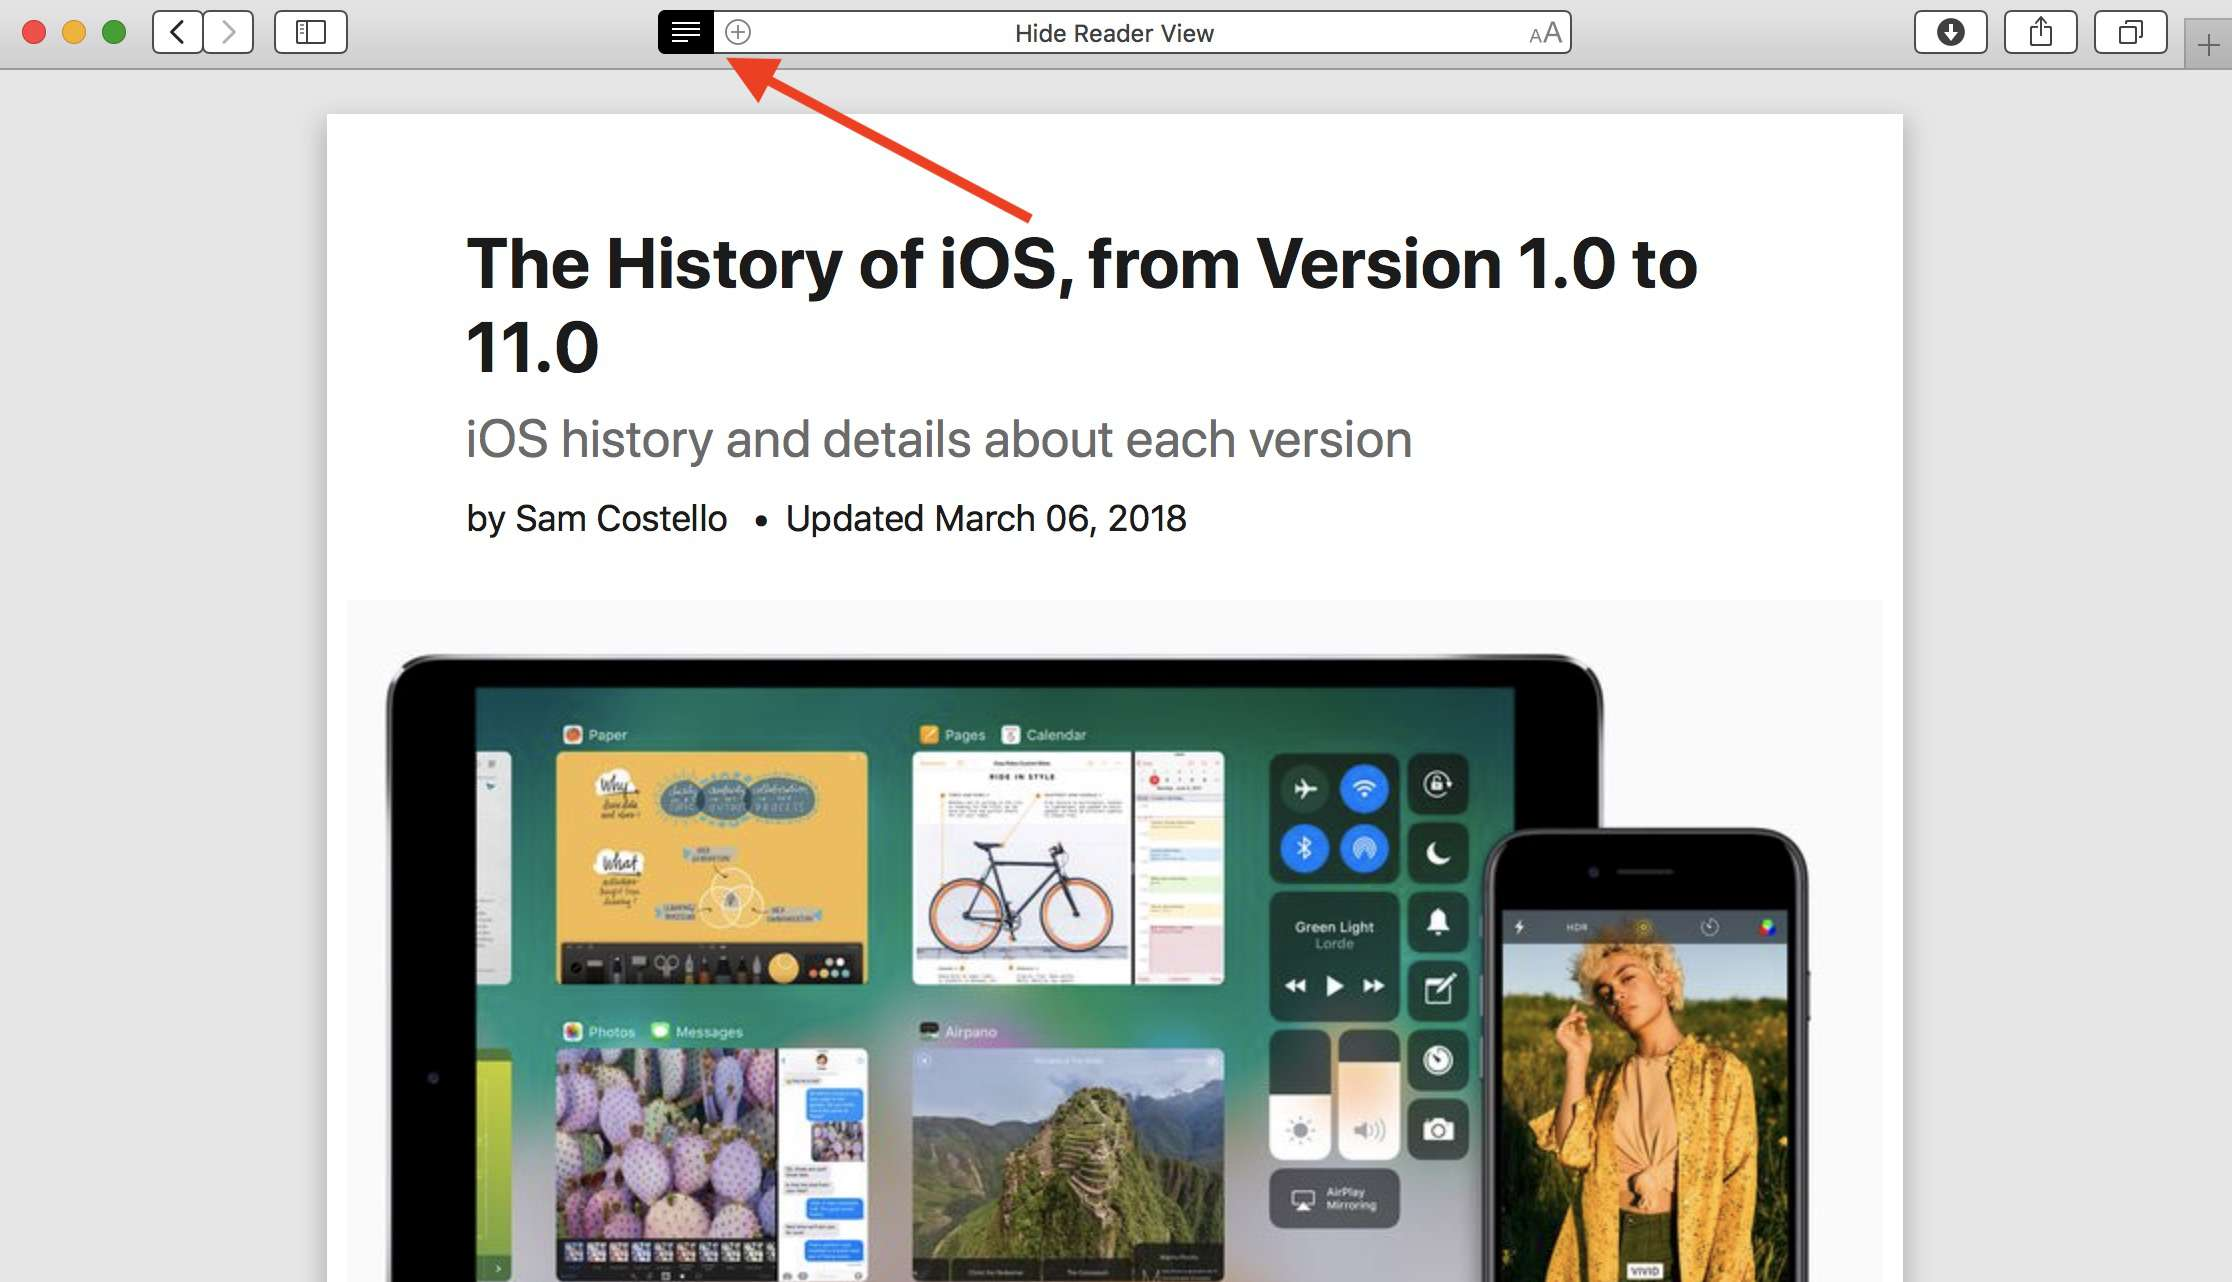 How to use Reader mode in Safari